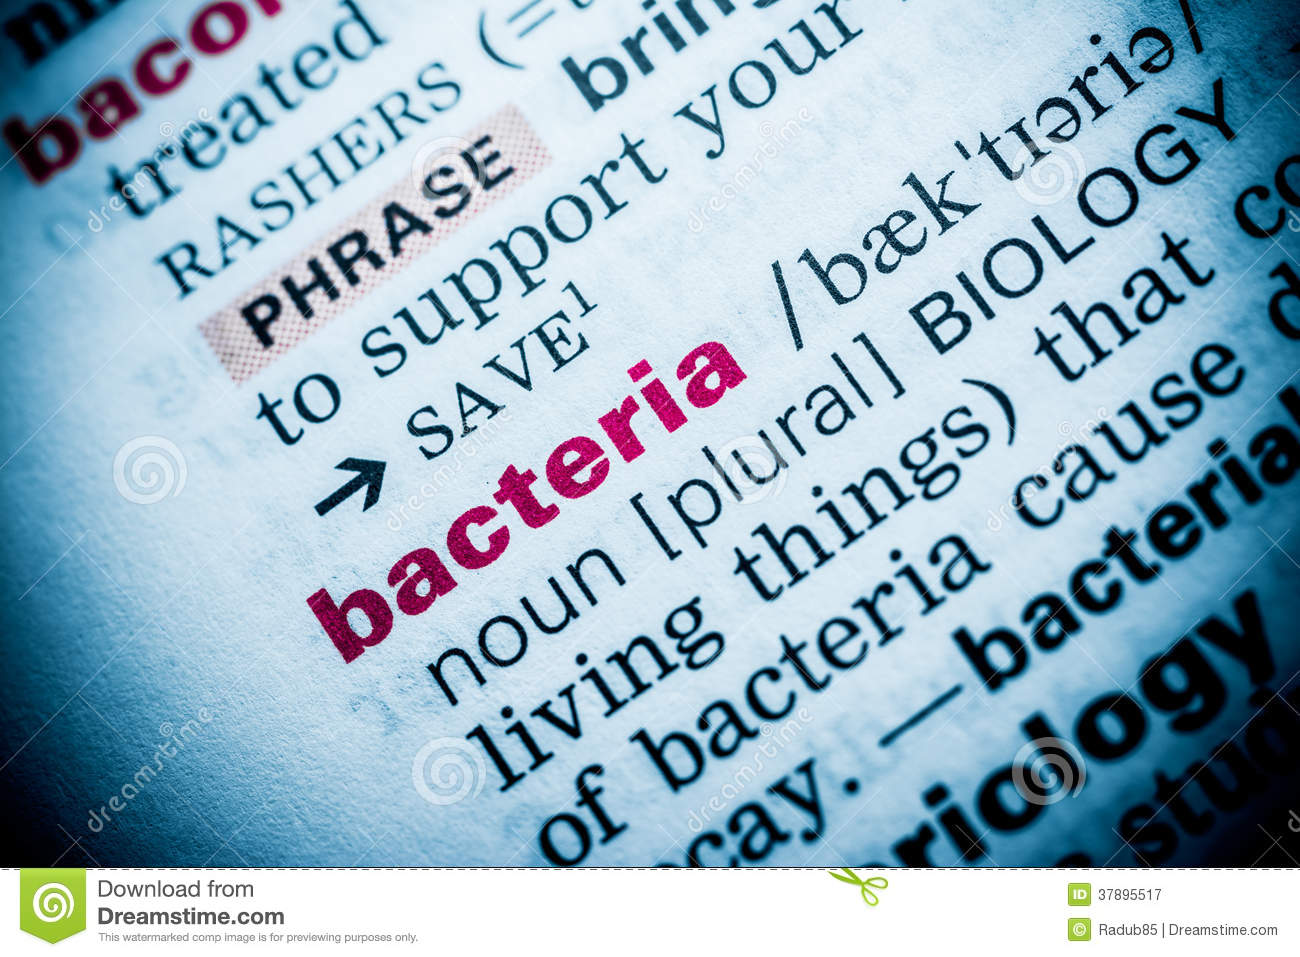 bacteria word definition stock image. image of conceptual - 37895517